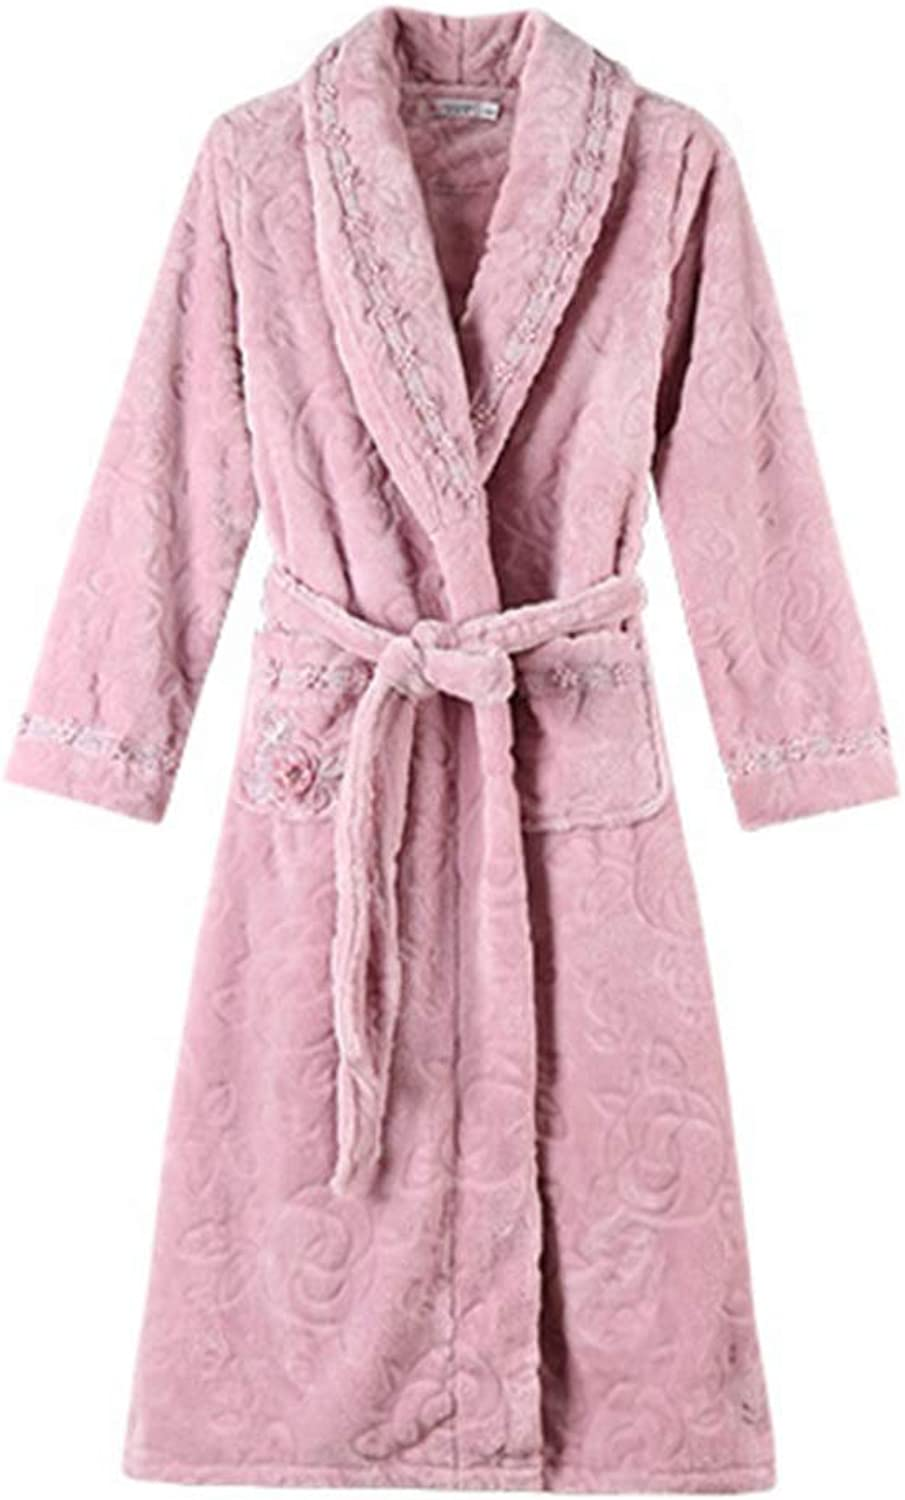 NAN Liang Luxury Nightgown Female Winter Thickening Warm Method Pajamas Cotton Bathrobes Bathrobes Long Autumn and Winter Models Home Service Soft (color   XXL)